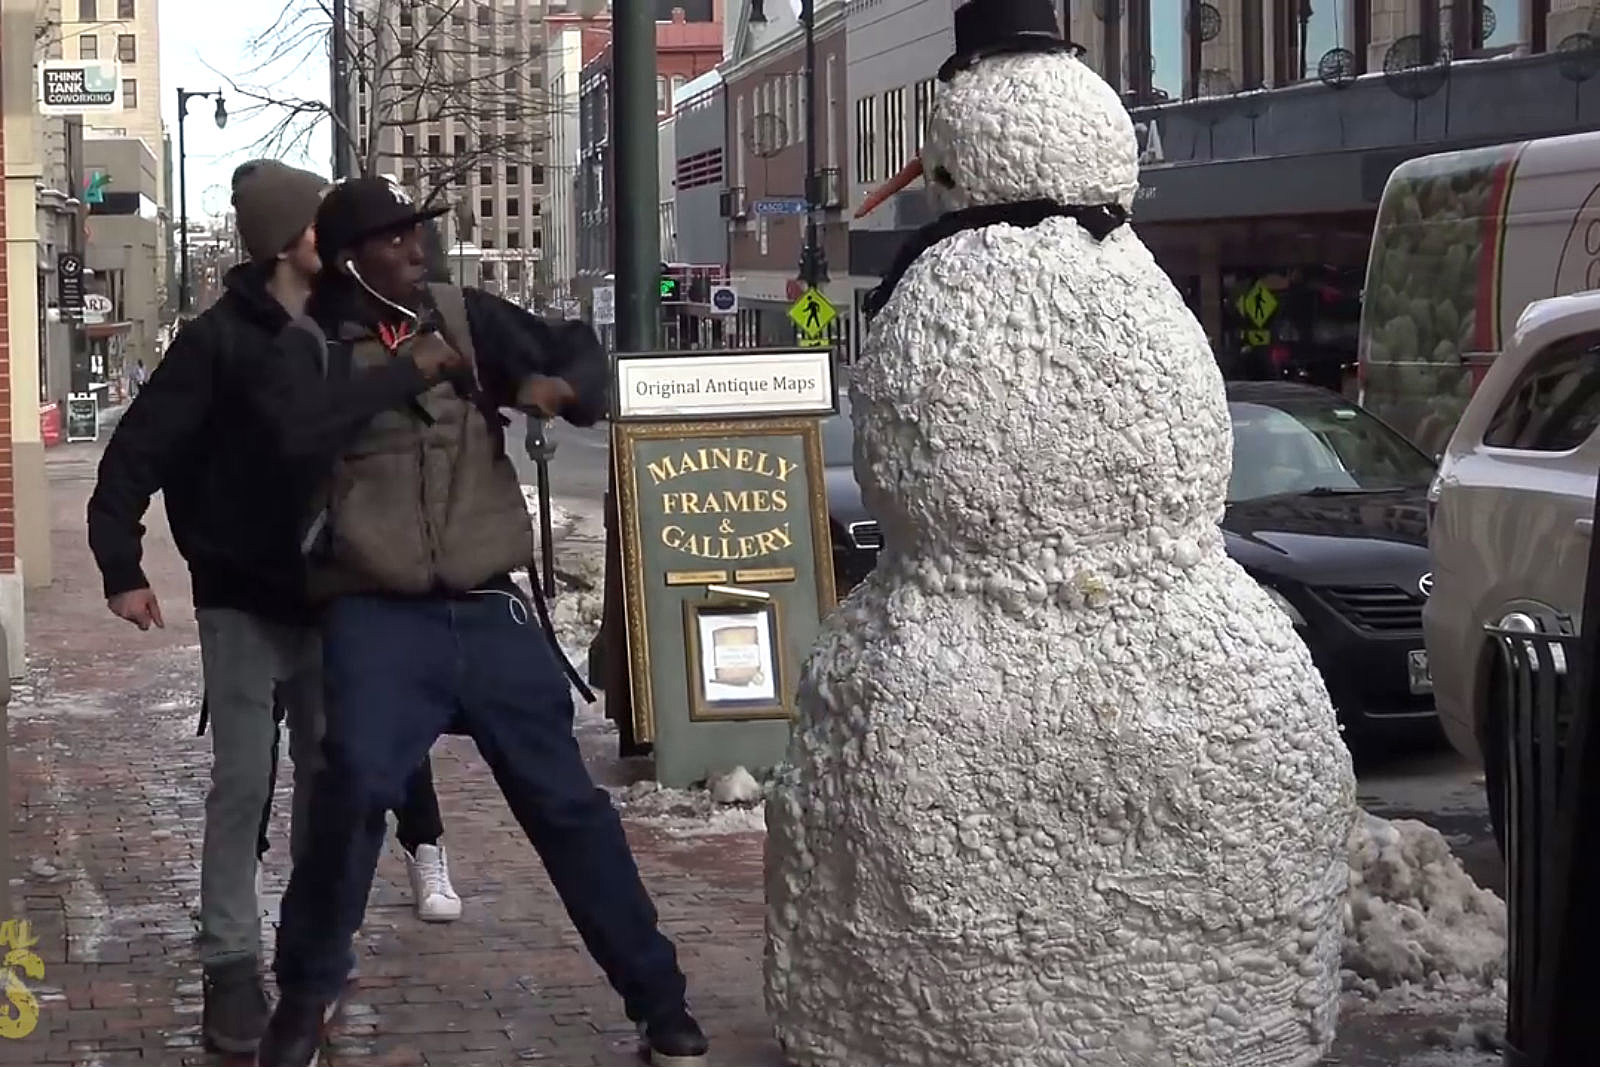 scary snowman in portland makes people jump as it comes to life